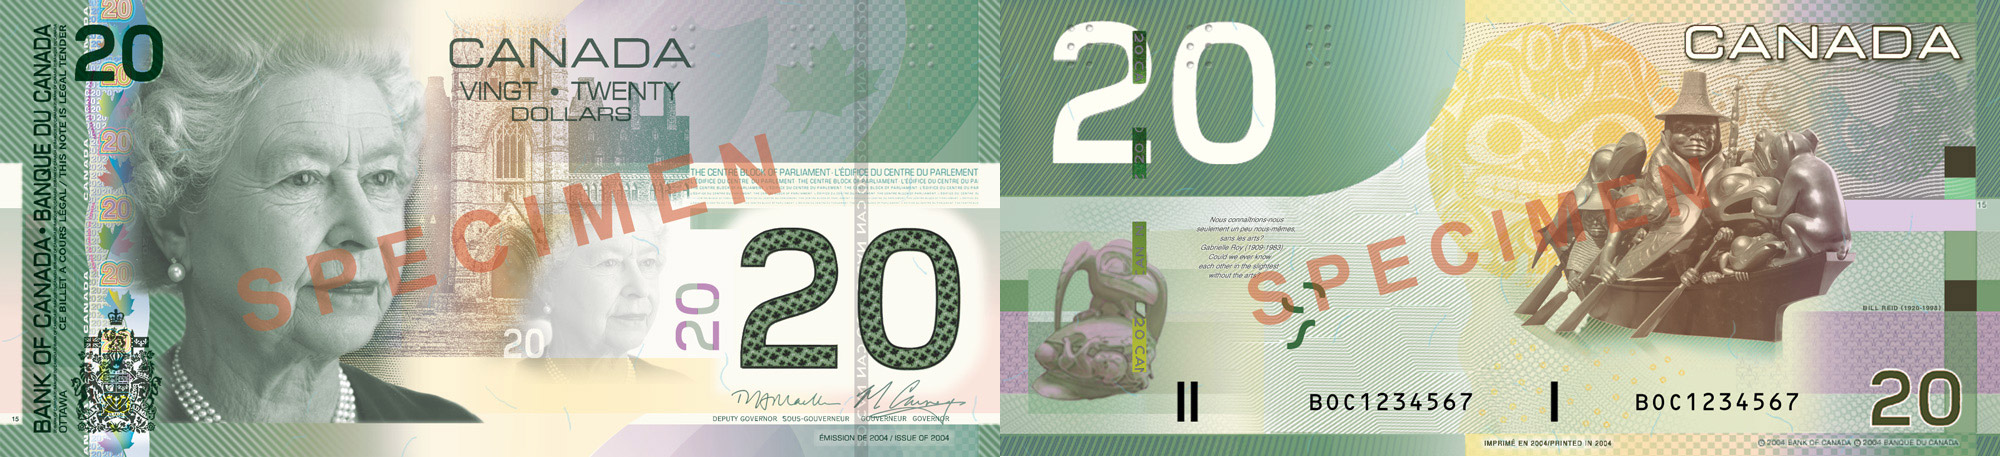 20 dollars 2004 to 2006 - Canada Banknote